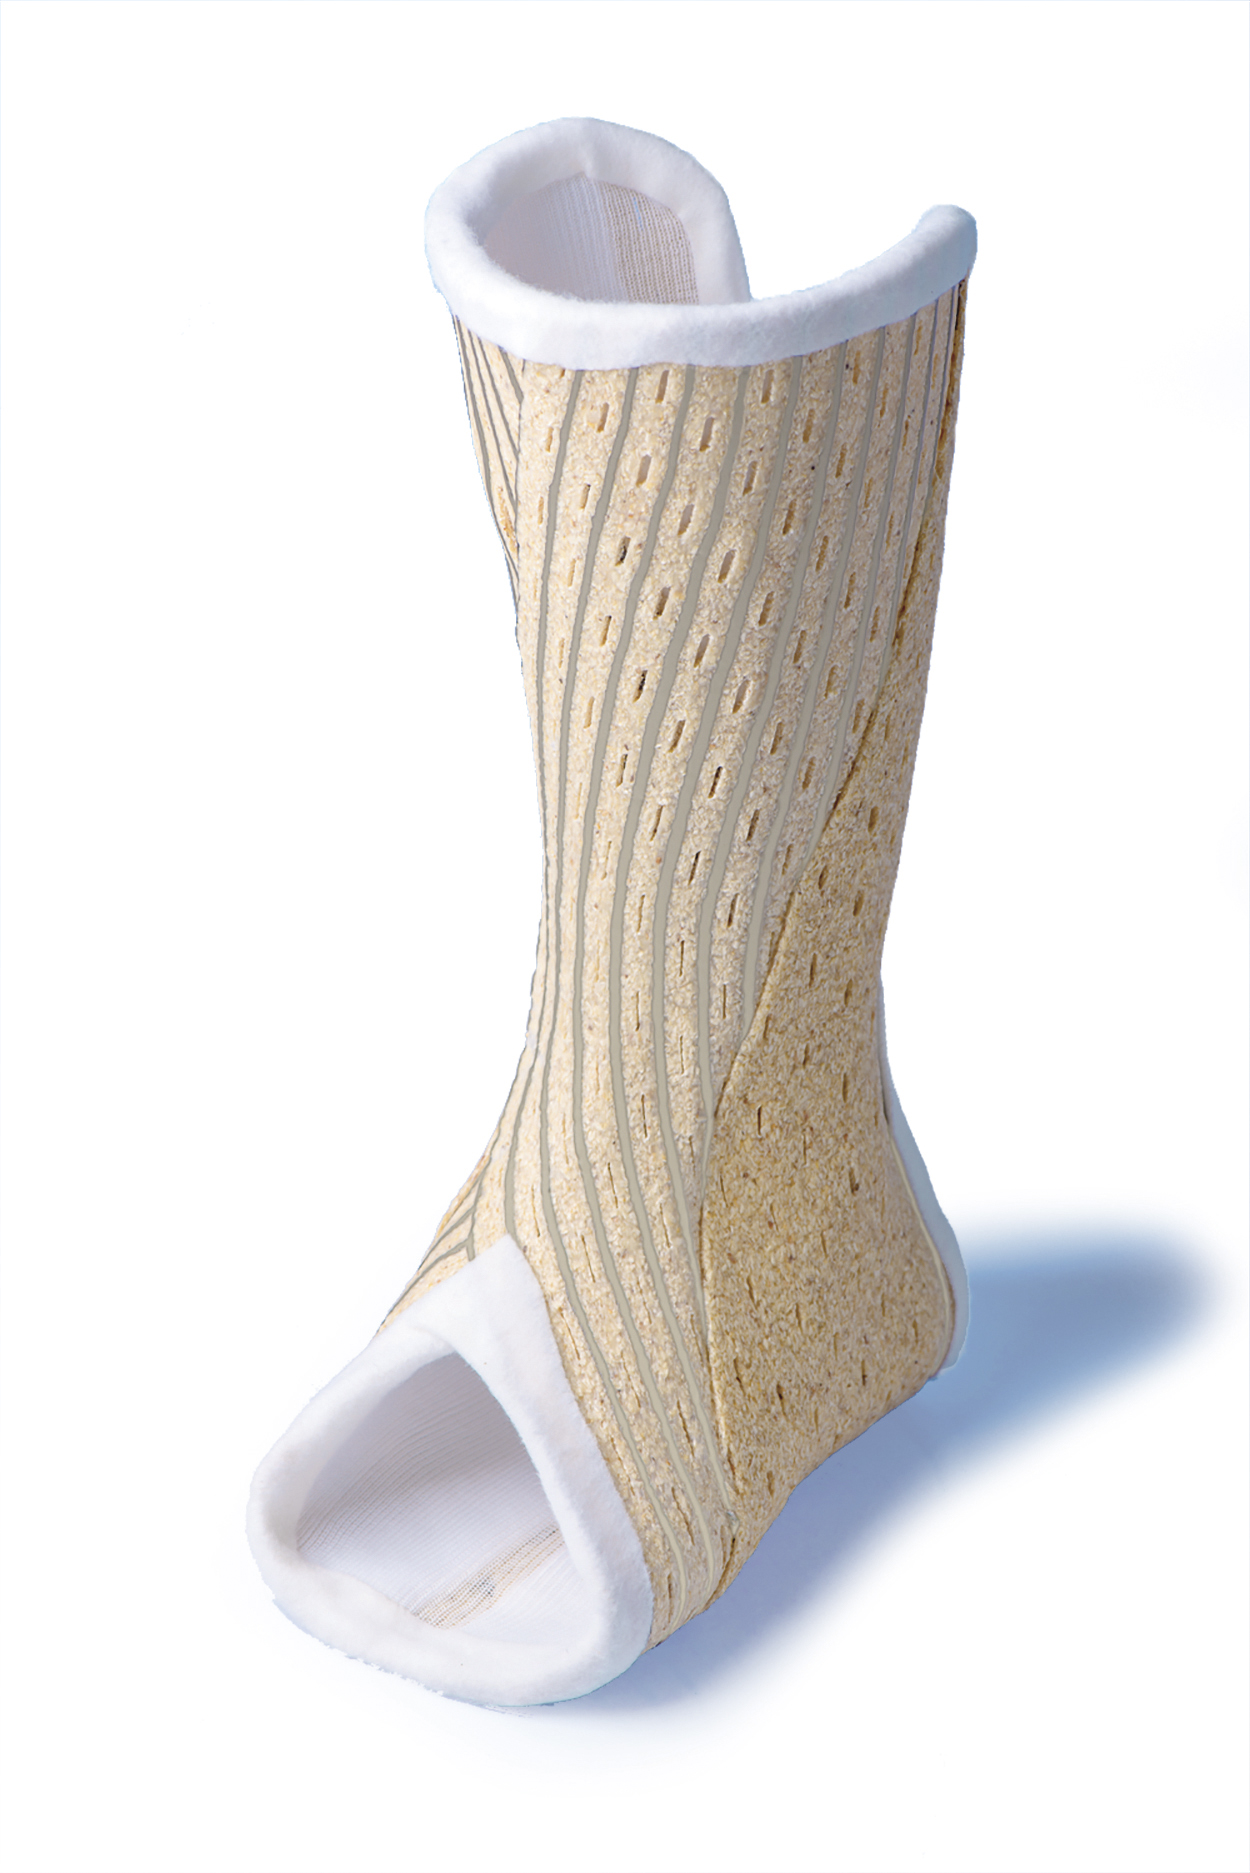 Figure 1. A removable semi-rigid orthosis